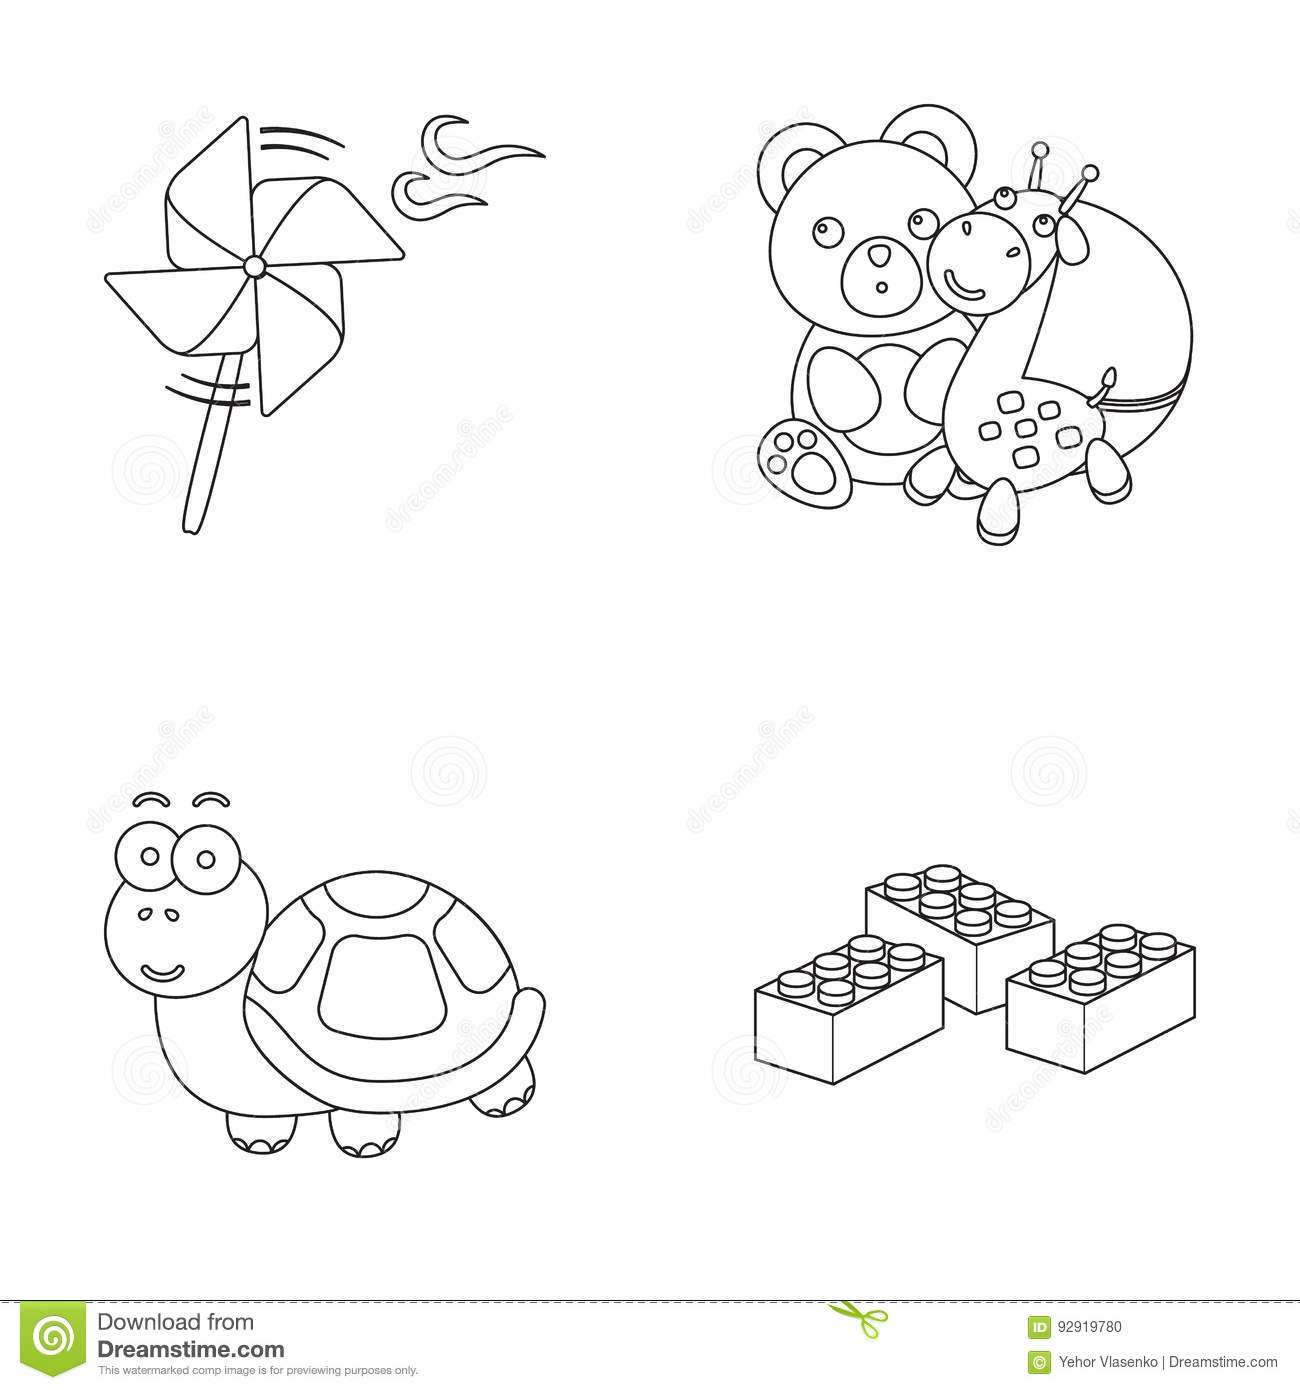 A toy propeller, a teddy bear with a giraffe and a colorful ball, a toy turtle, a lego, a designer for children. Toys